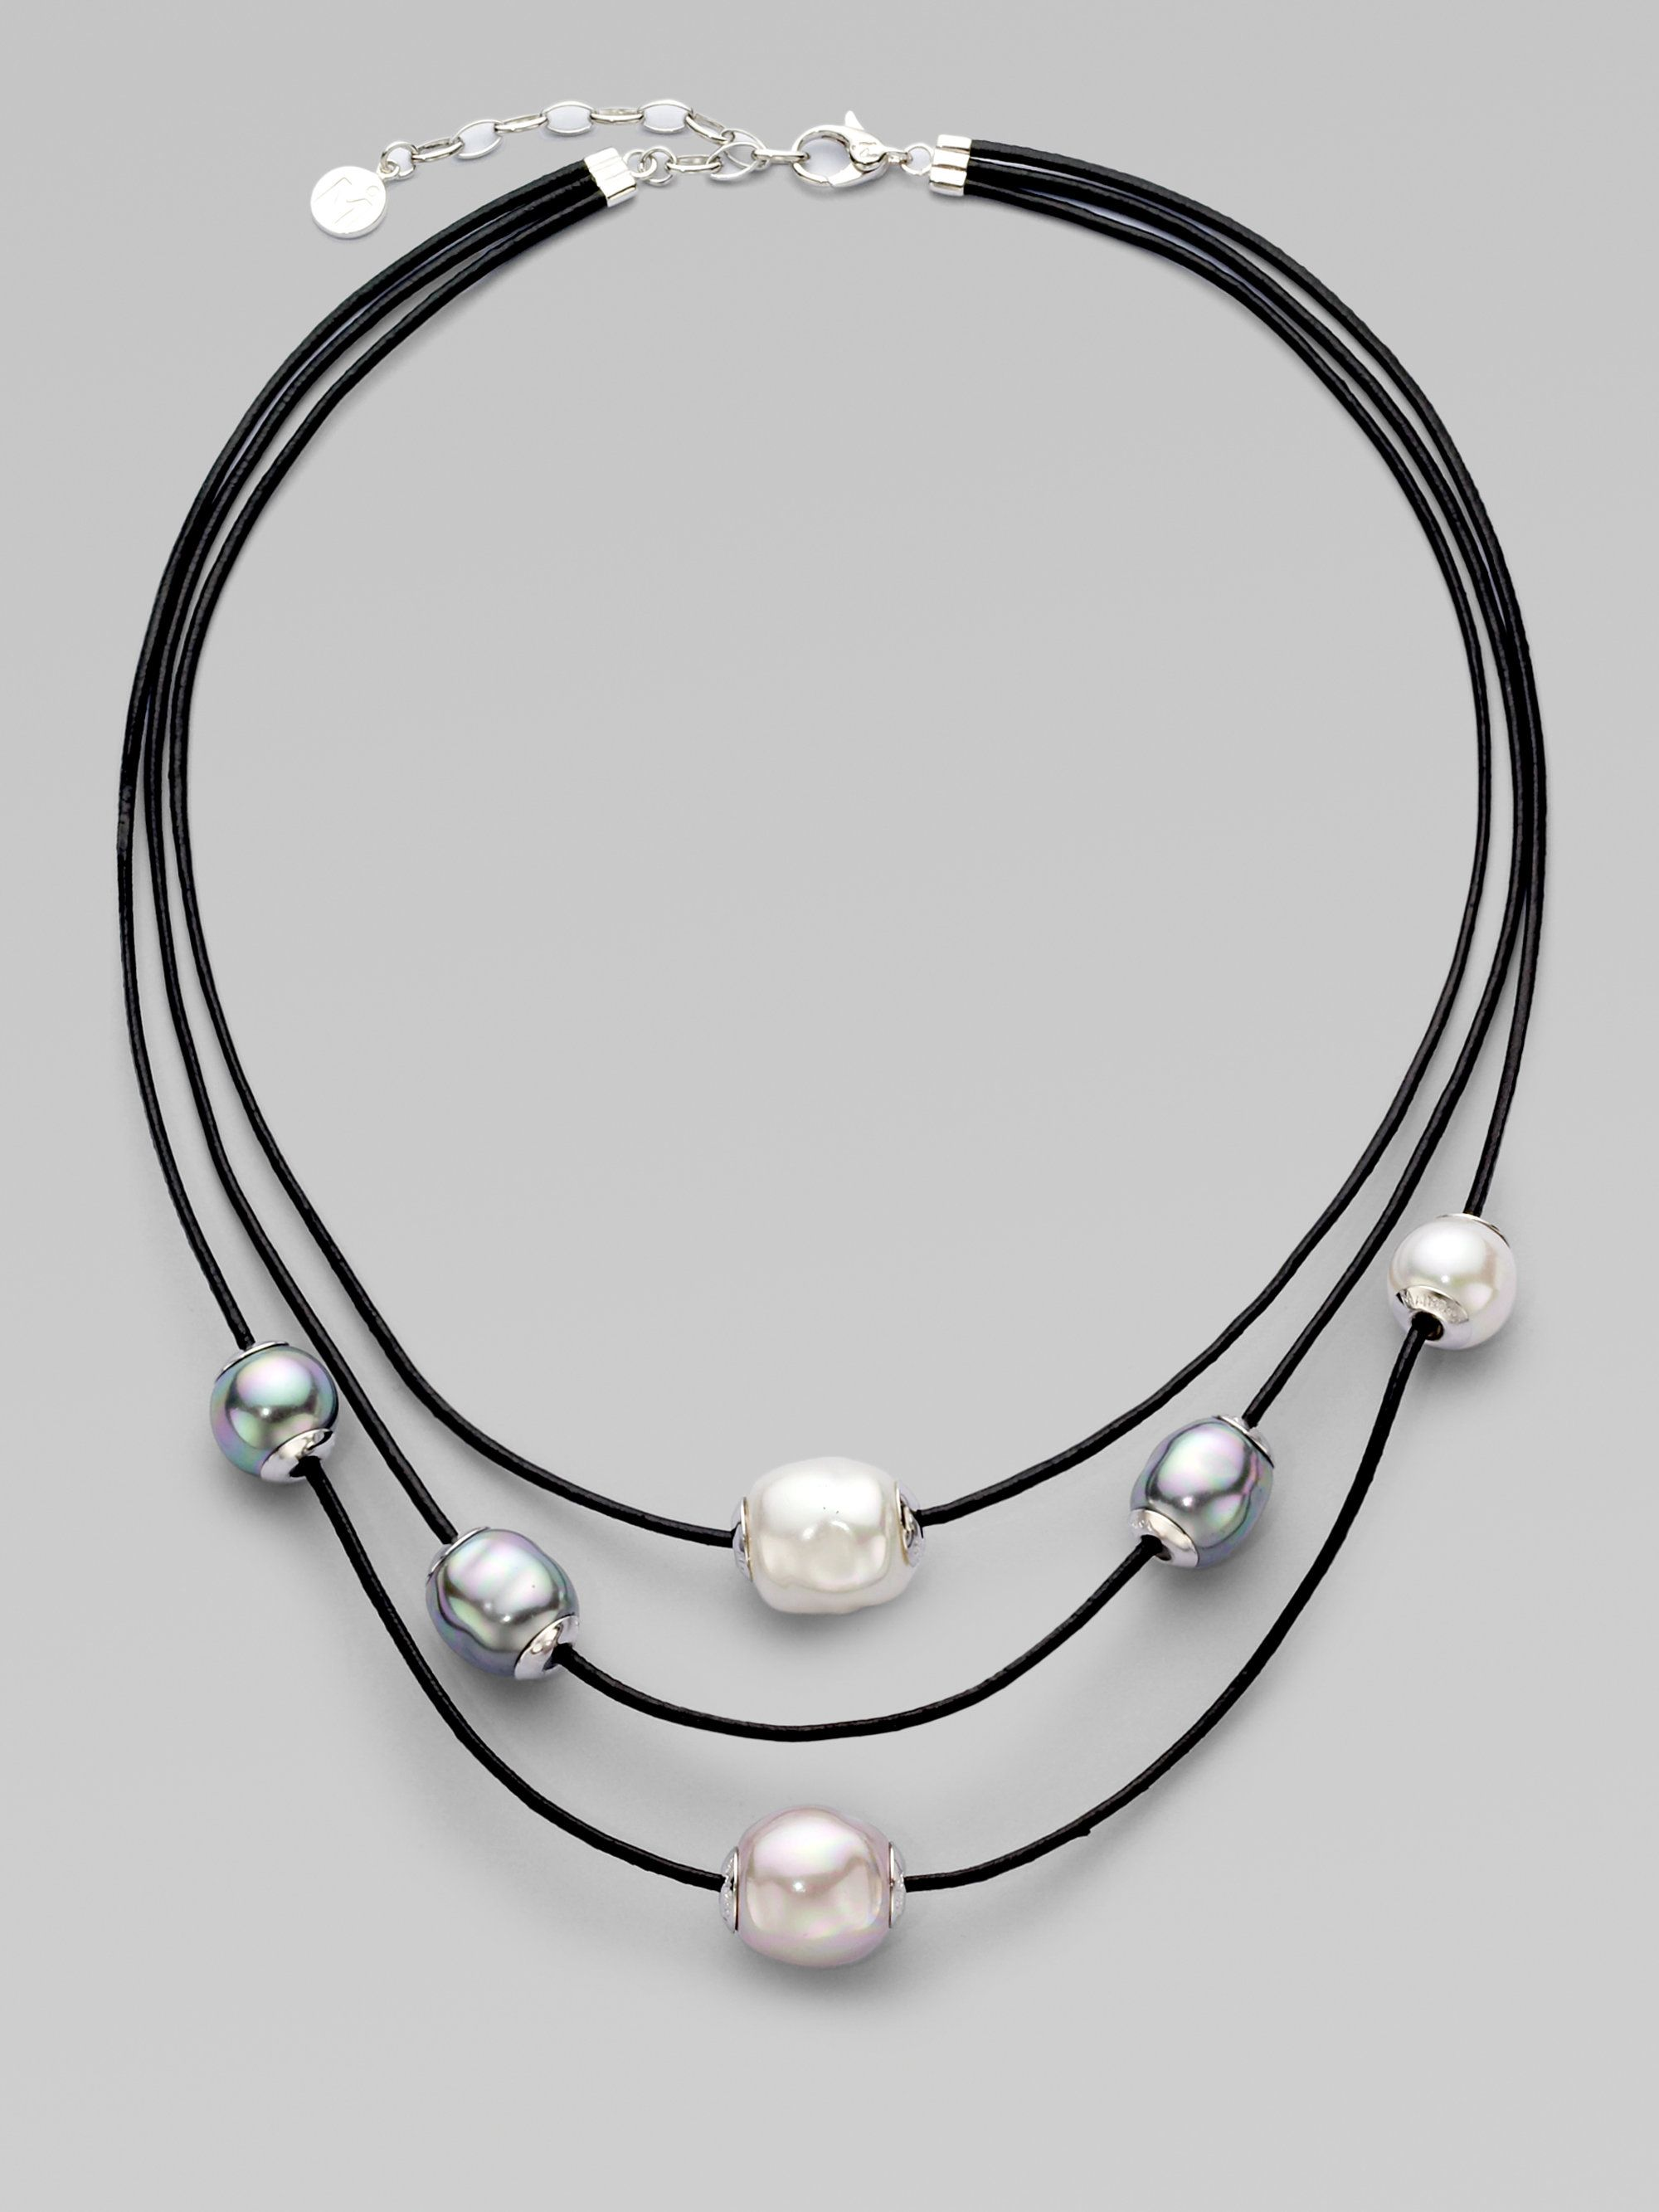 pave lyst pav necklace kenneth metallic row tritone tri bead multi in women new tone jewelry york s cole